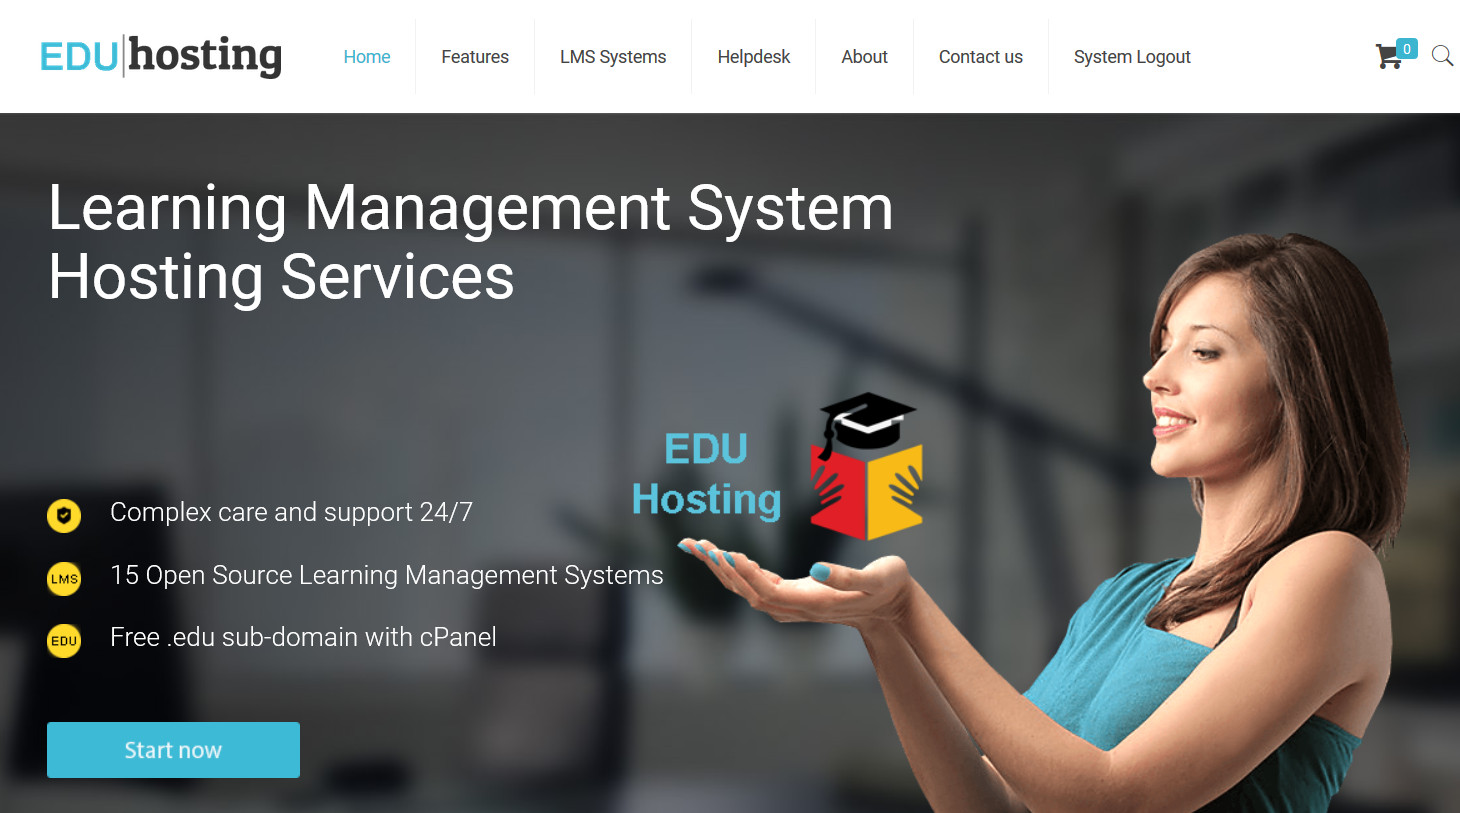 EDU Hosting Services